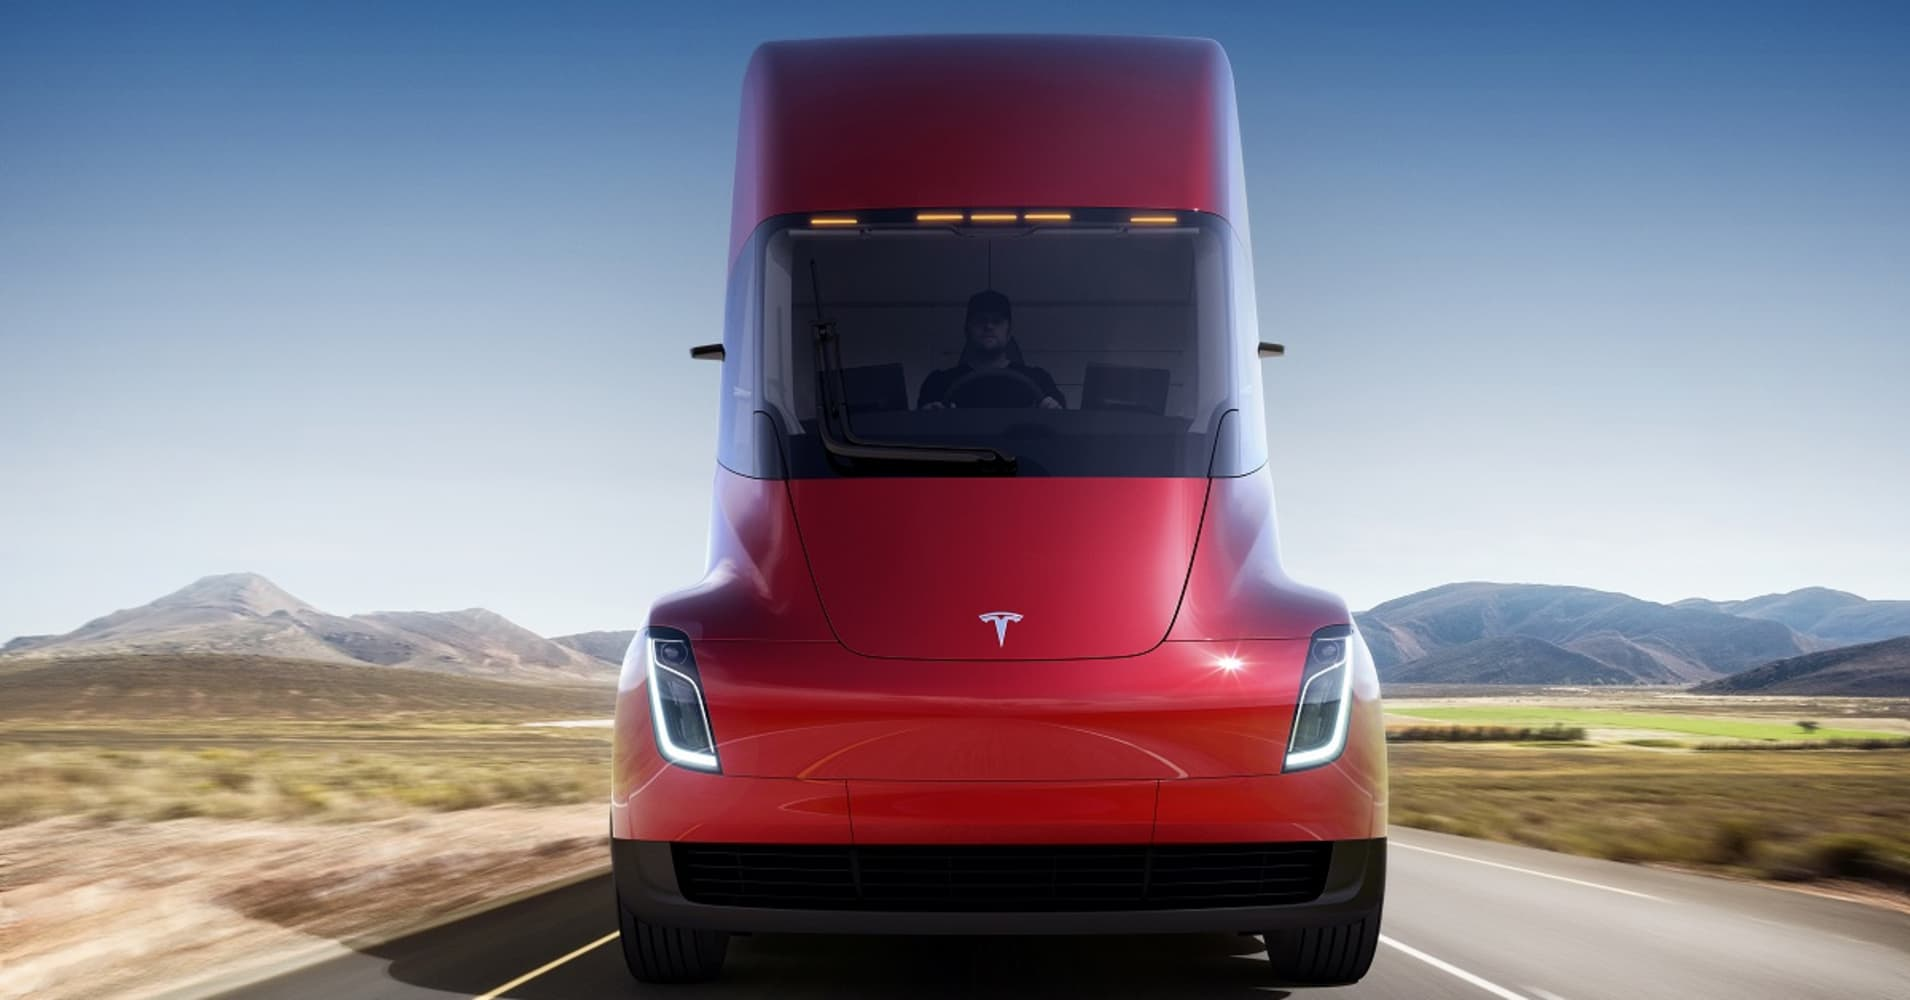 Wal-Mart says it's planning to test Tesla's new electric trucks